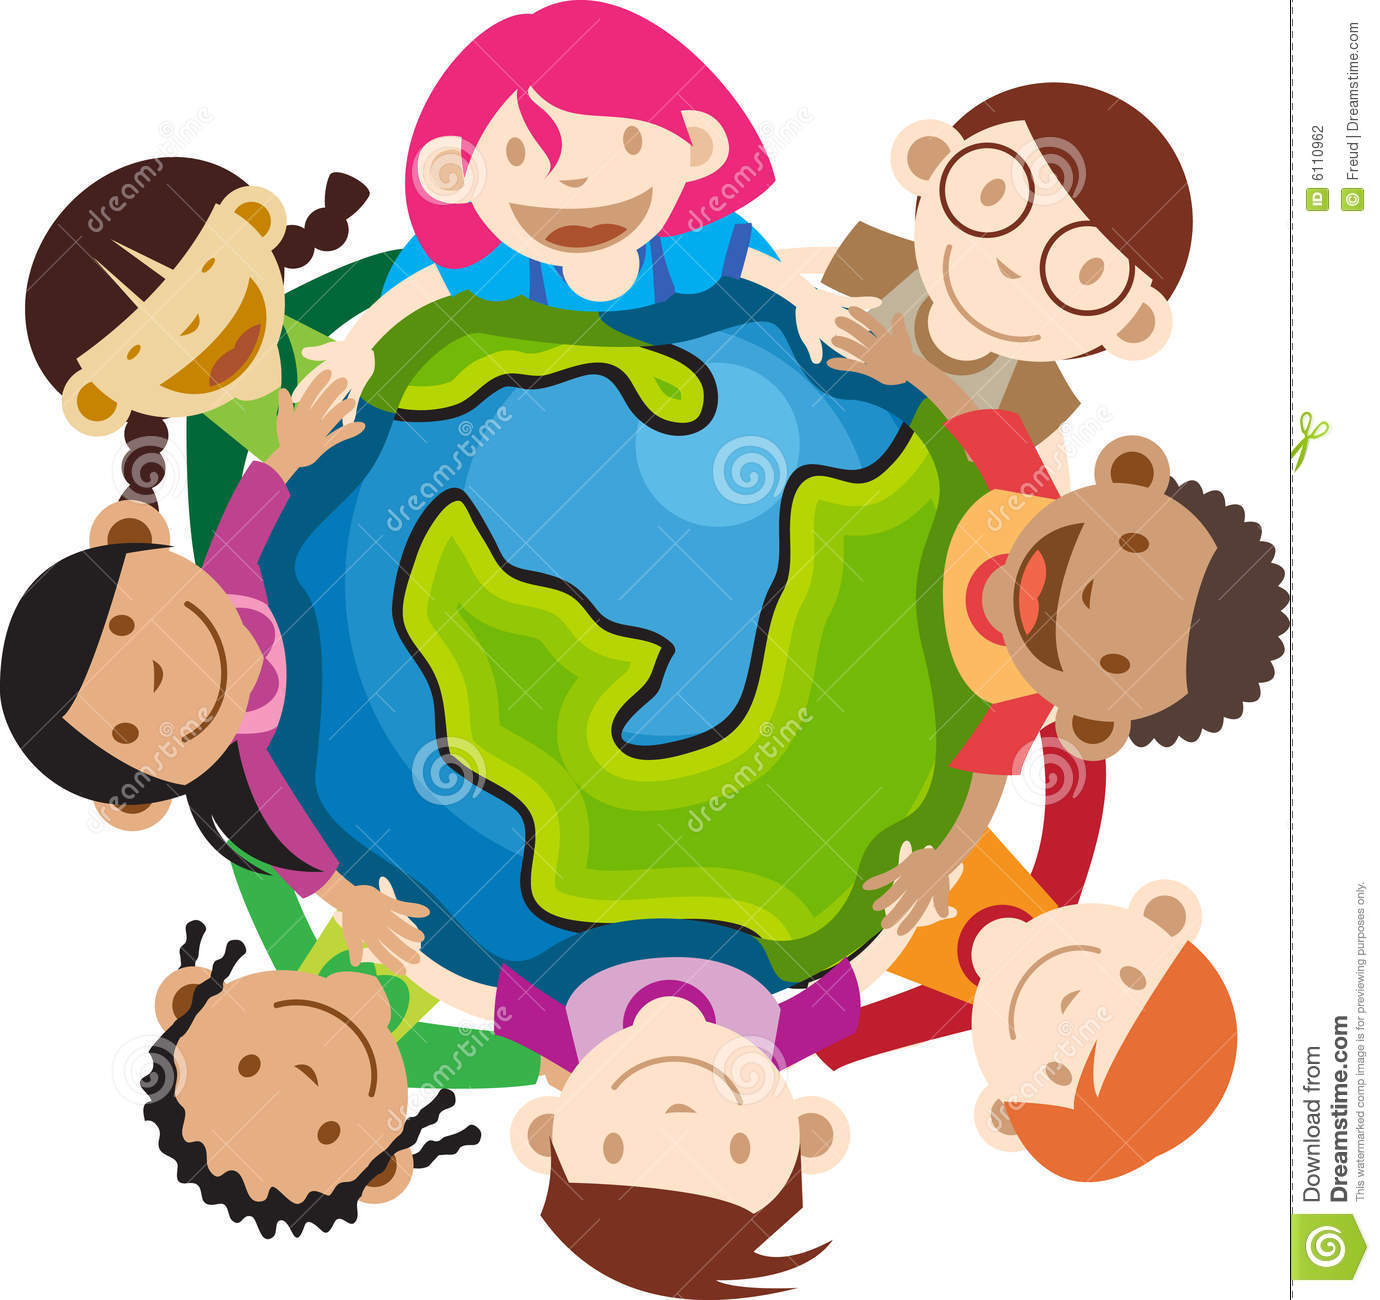 Pictures of cultural diversity free download best pictures of 1380x1300 cultural clipart different culture publicscrutiny Choice Image